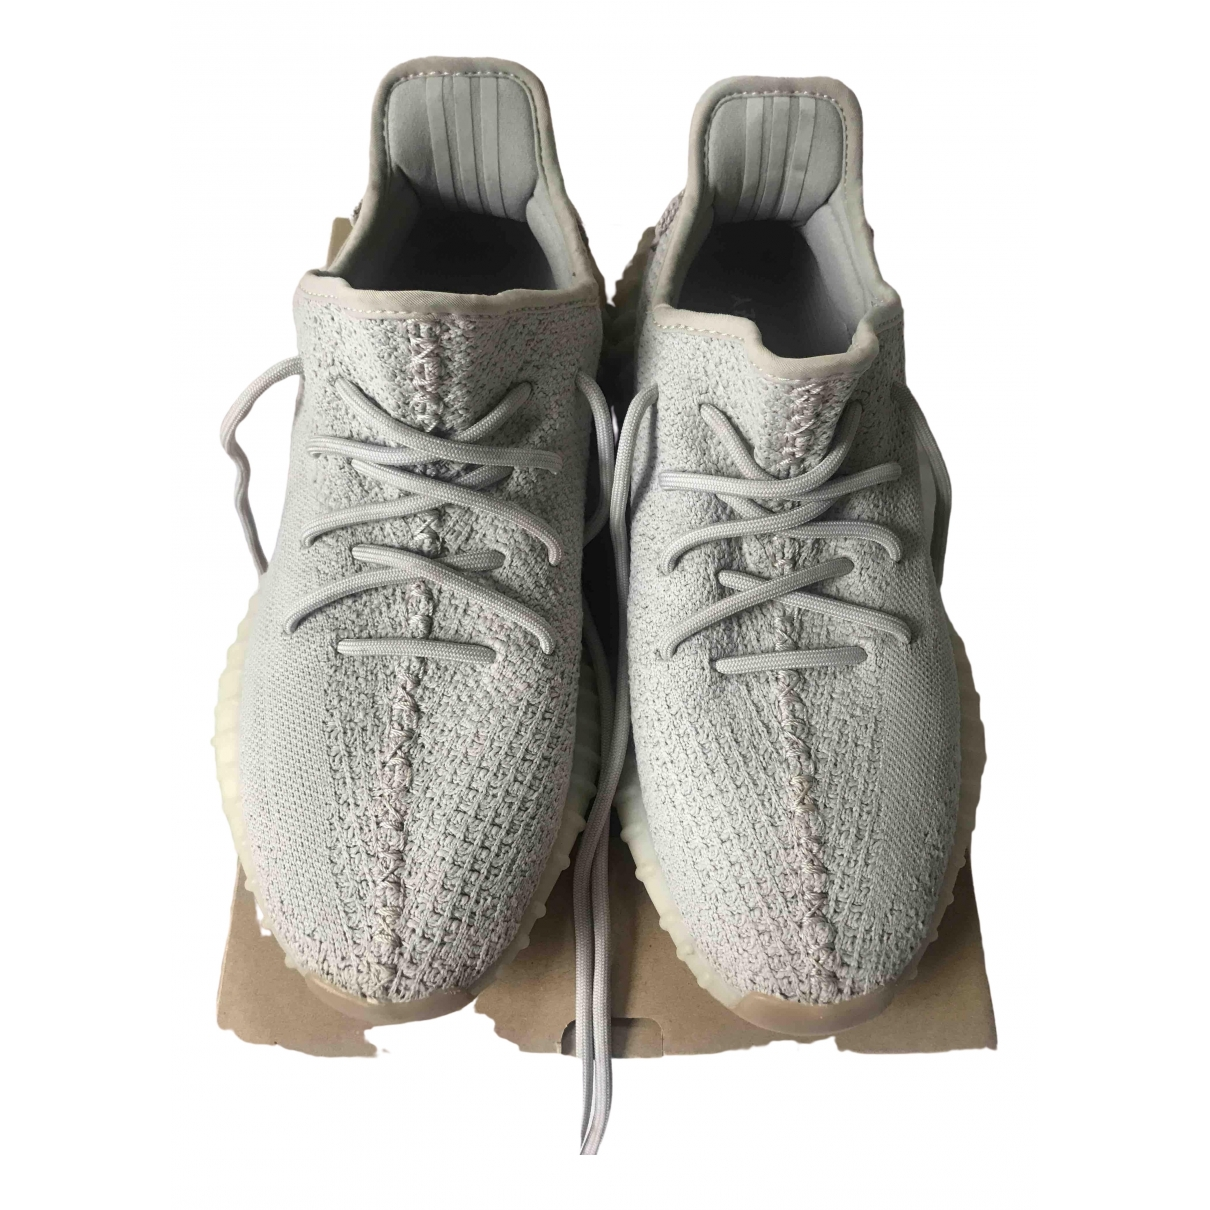 Yeezy X Adidas Boost 350 V2 Sneakers in  Grau Polyester